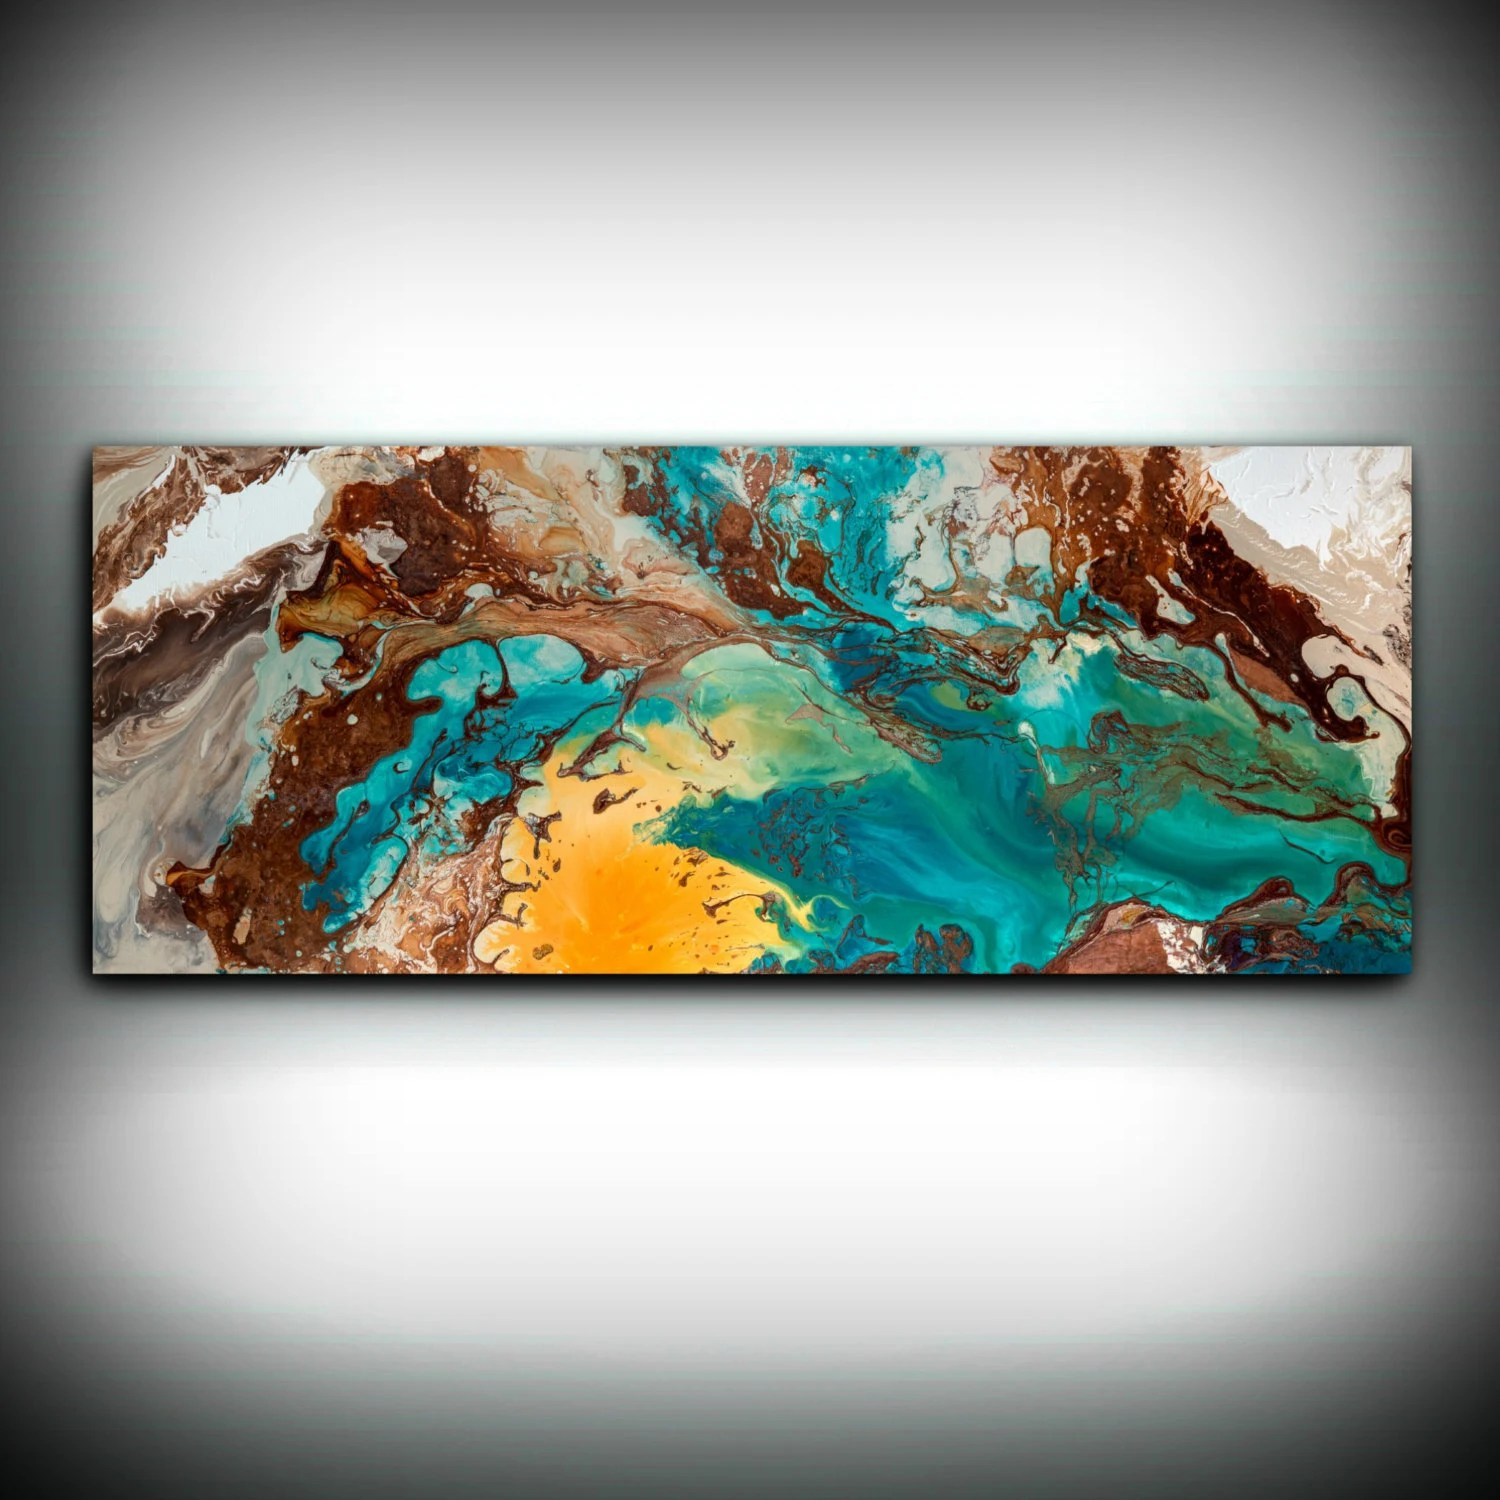 Awesome Canvas Wall Decor Large Abstract Wall Art Print Blue Brown Art To Oversized Wall Copper Painting By L Dawning Scott Canvas Wall Decor Large Abstract Wall Art Print Blue Brown art Abstract Wall Art